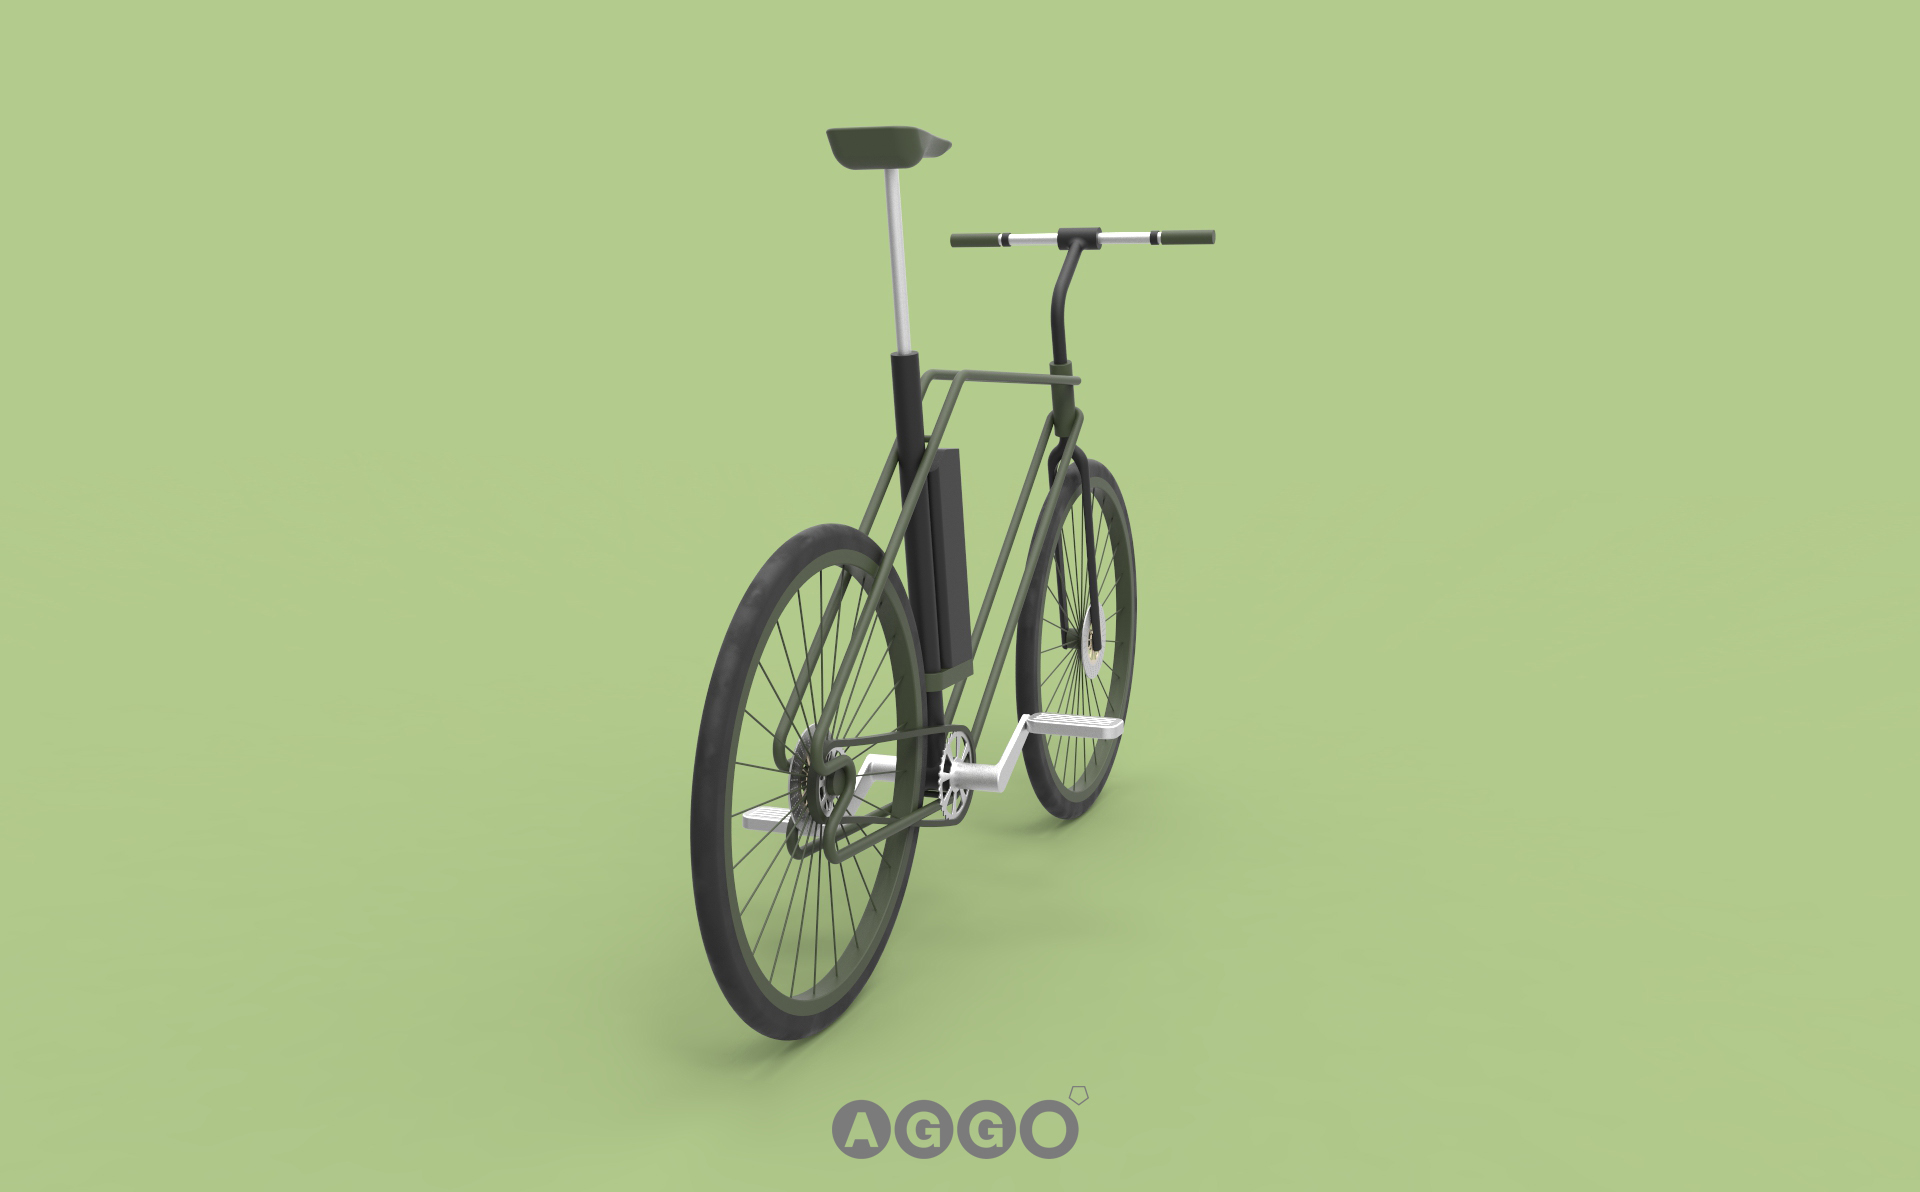 Electric_Bicycle_by_Aggo_003.jpg